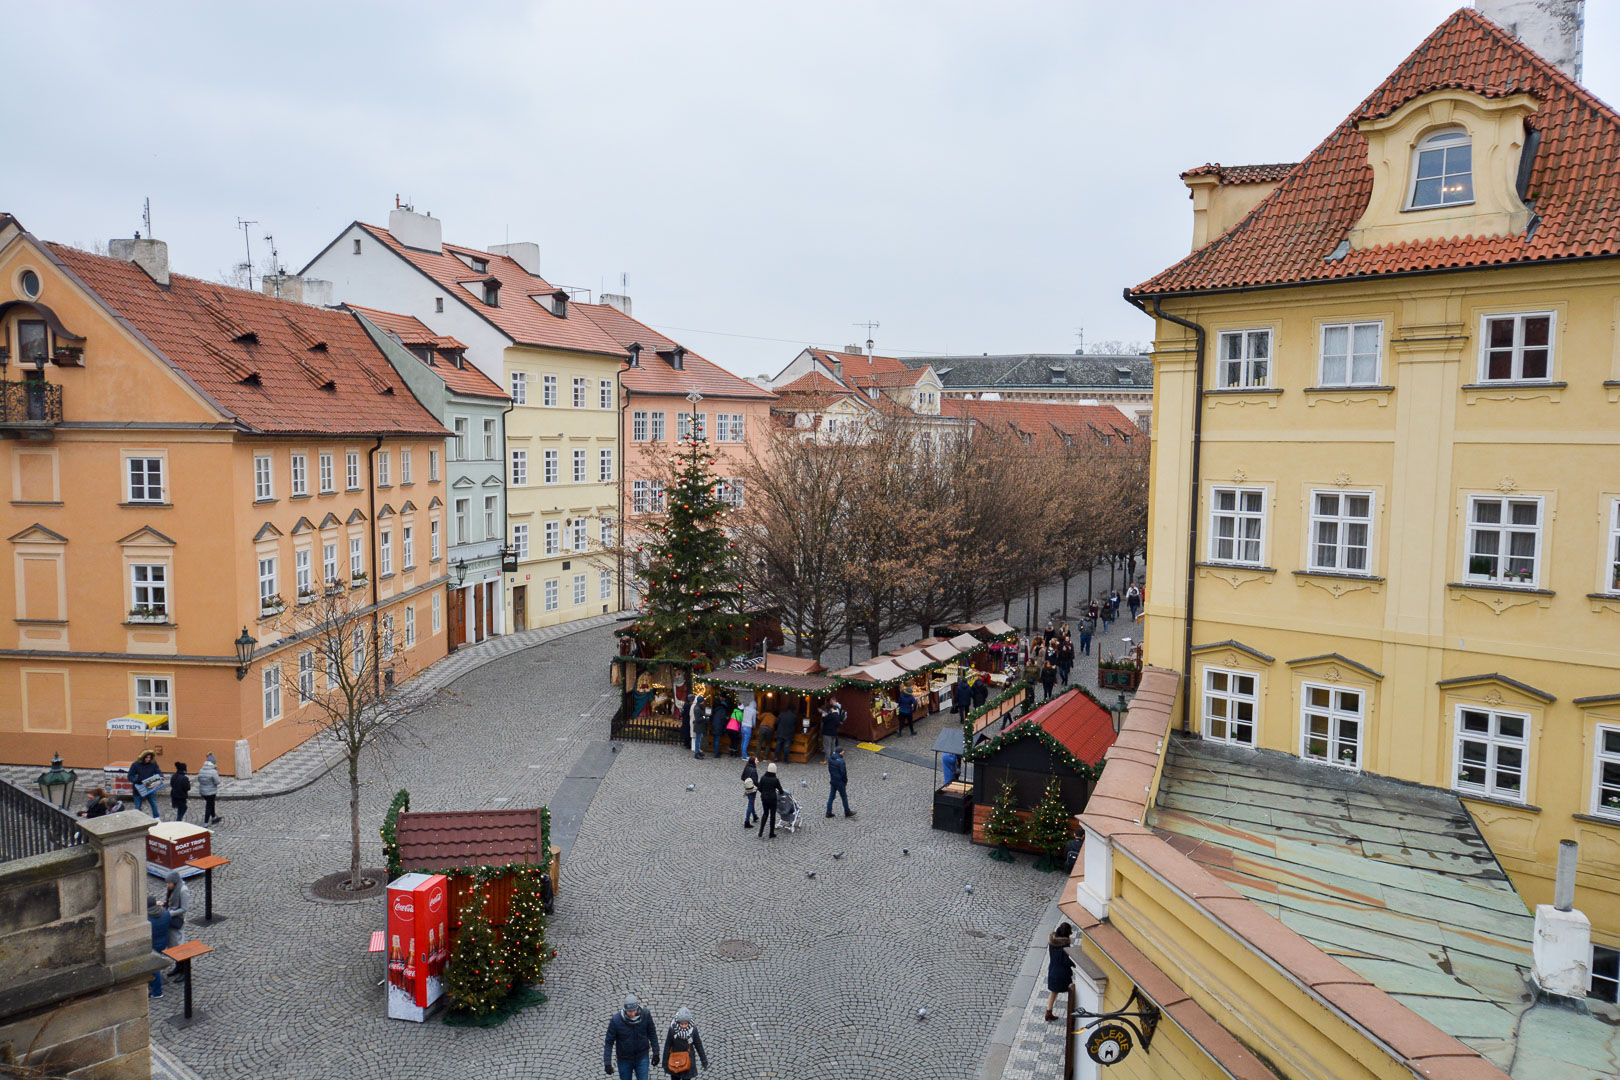 Spotted from the bridge…another Christmas Market!